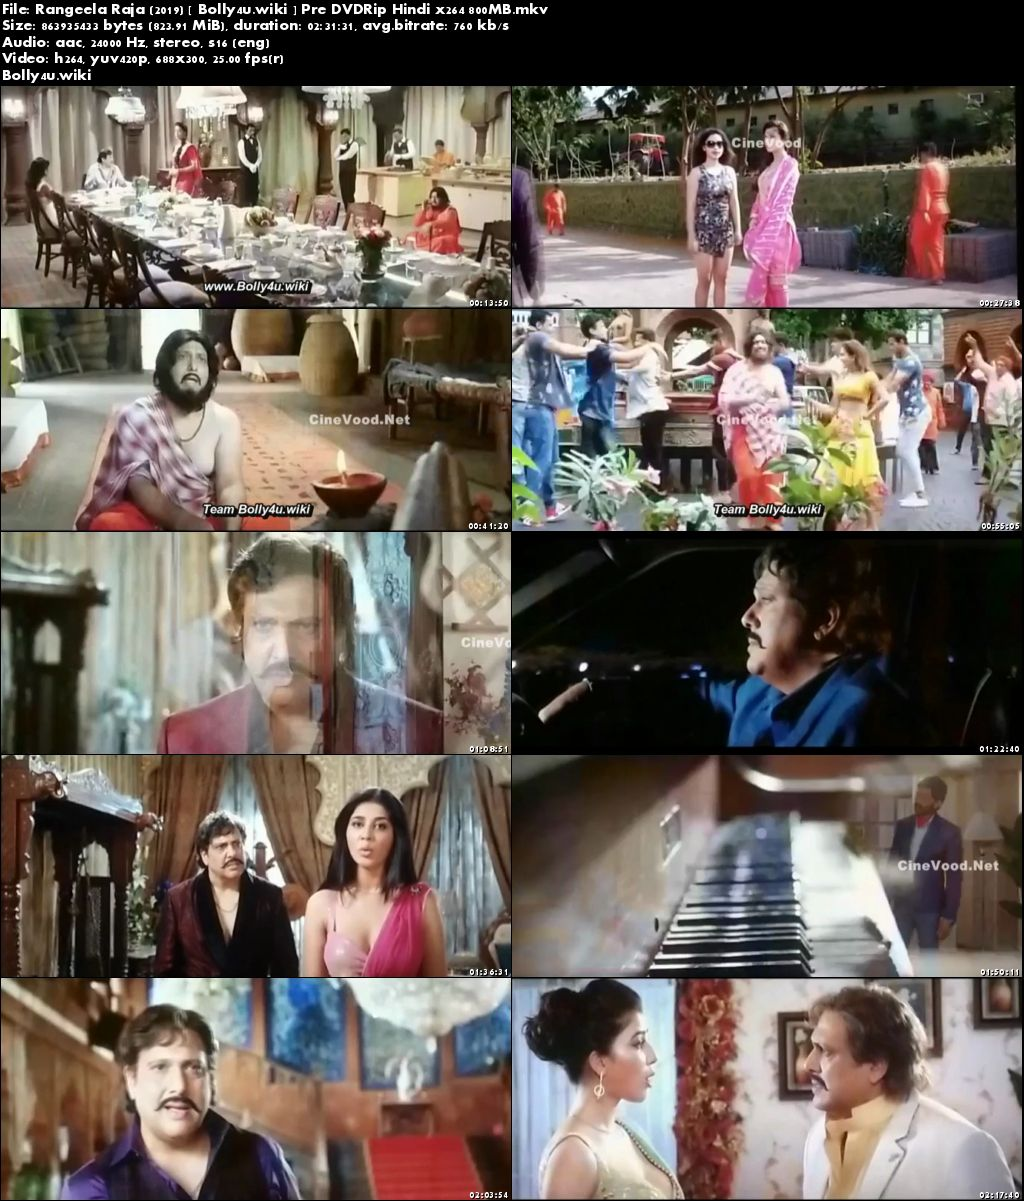 Rangeela Raja 2019 Pre DVDRip 400MB Full Hindi Movie Download 480p